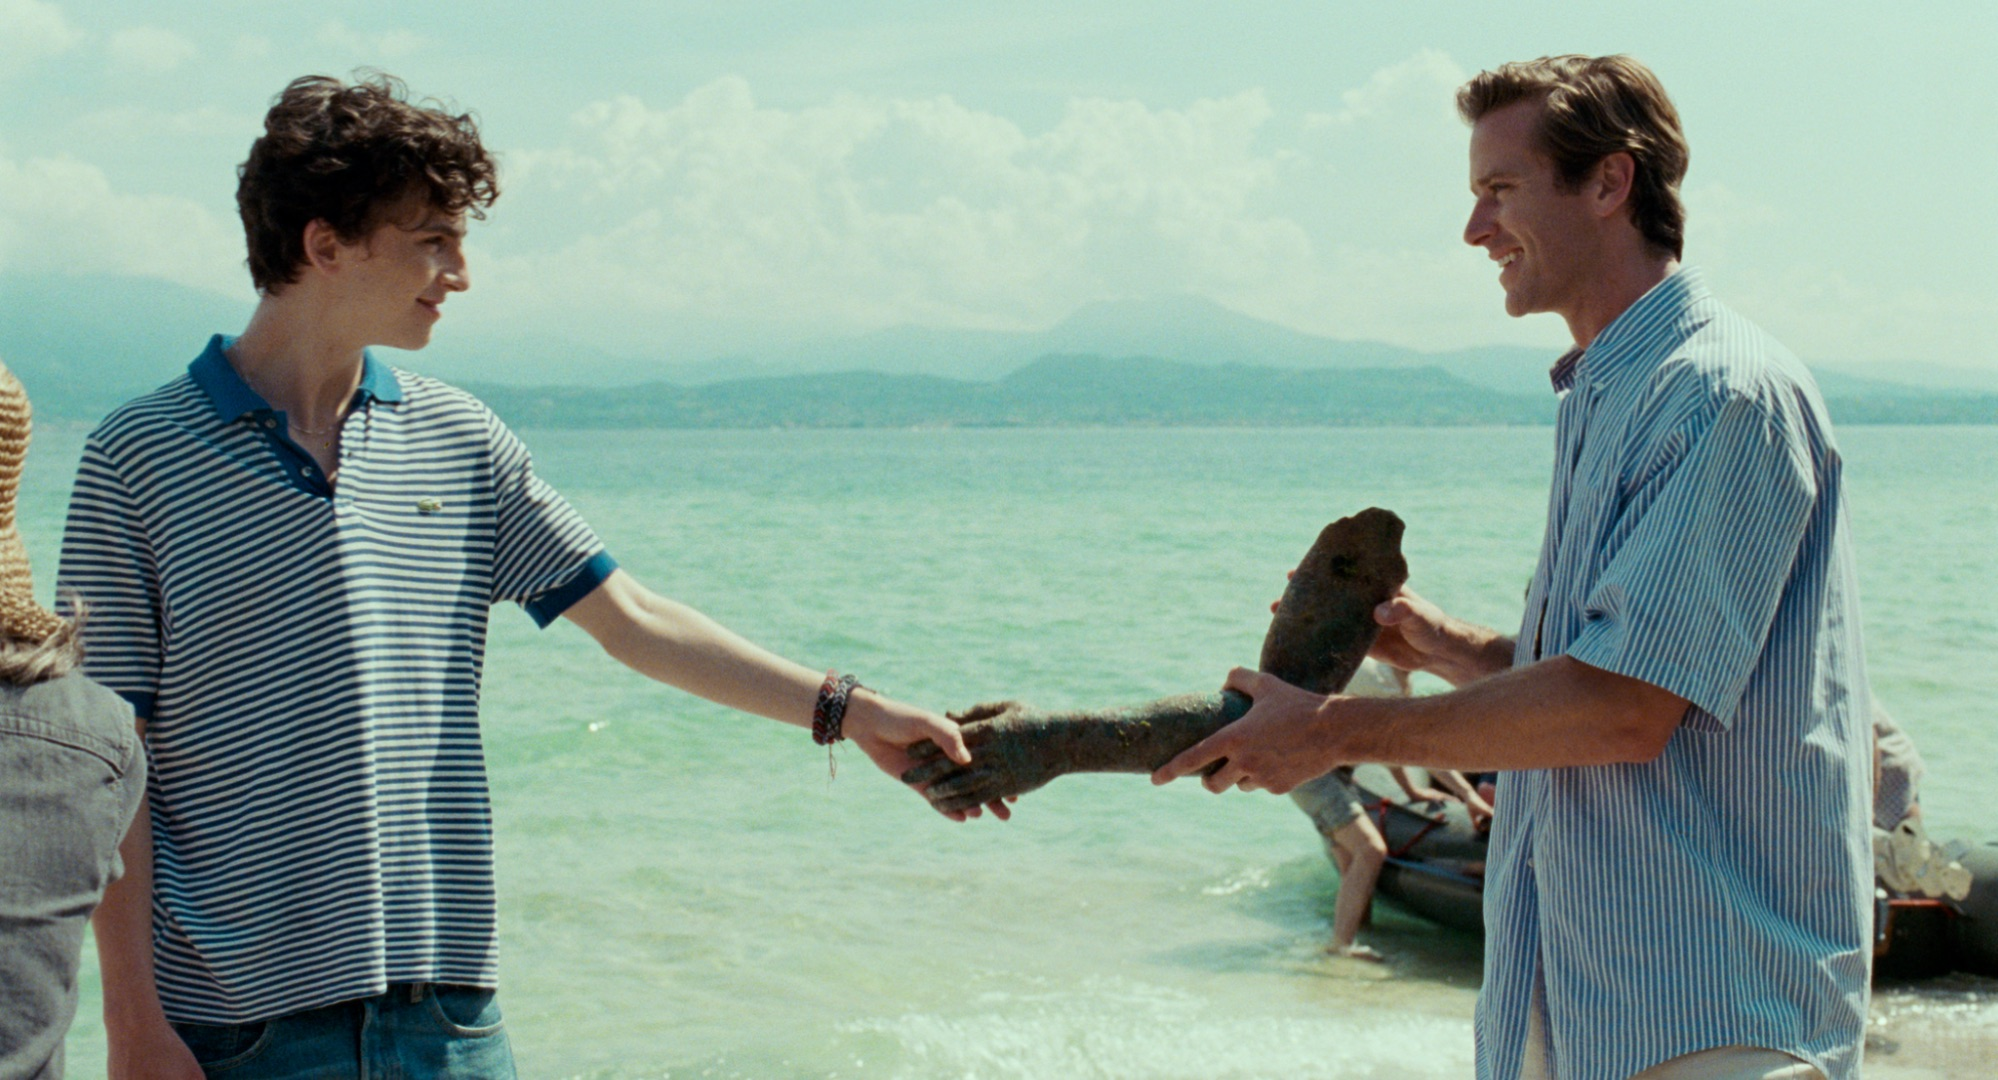 Music and touch in Call Me By Your Name | OUPblog